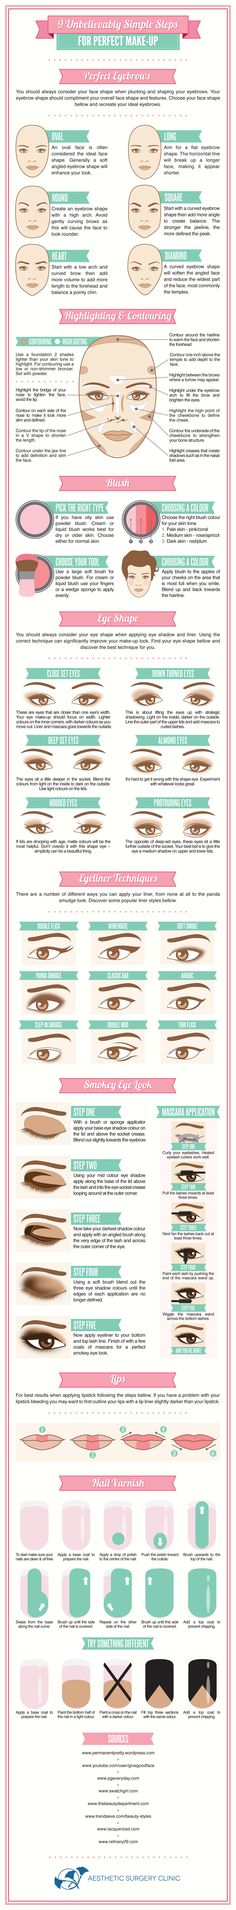 9 simple steps for perfect make-up